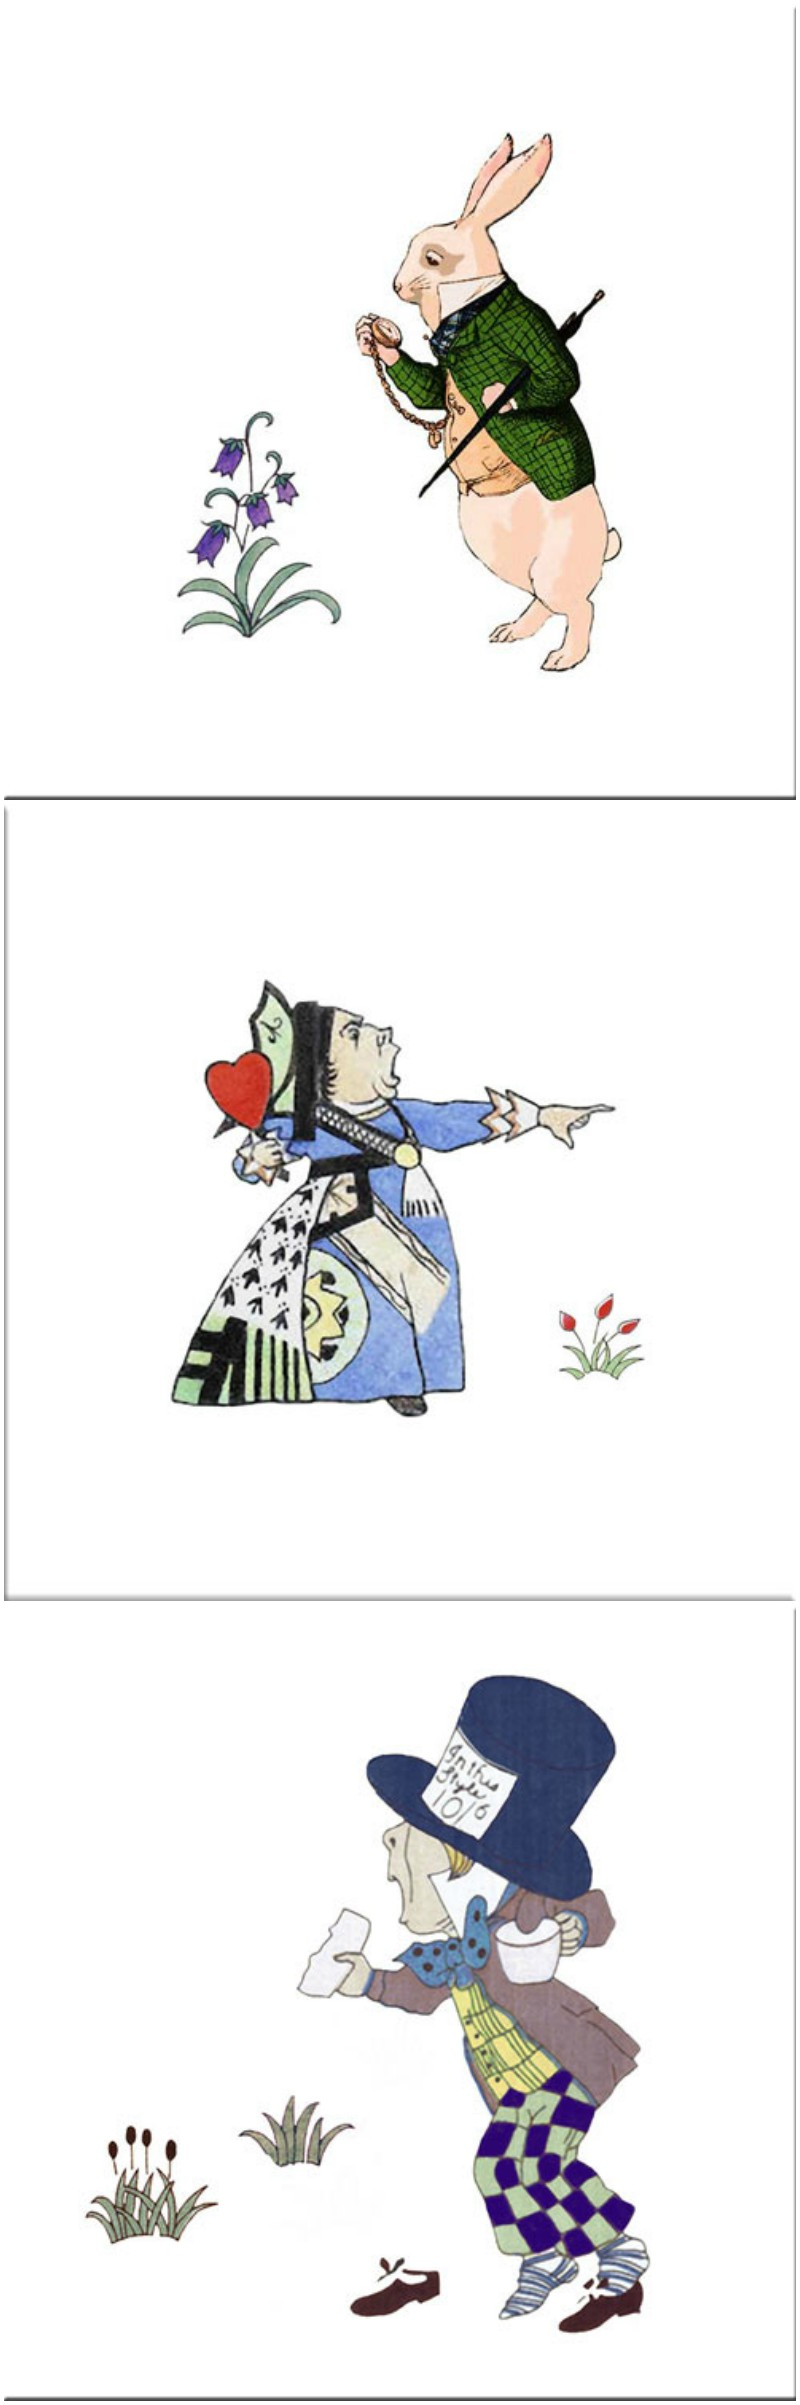 CFA Voysey Alice in Wonderland Tiles: Rabbit is late, Off with Her Head, Mad Hatter